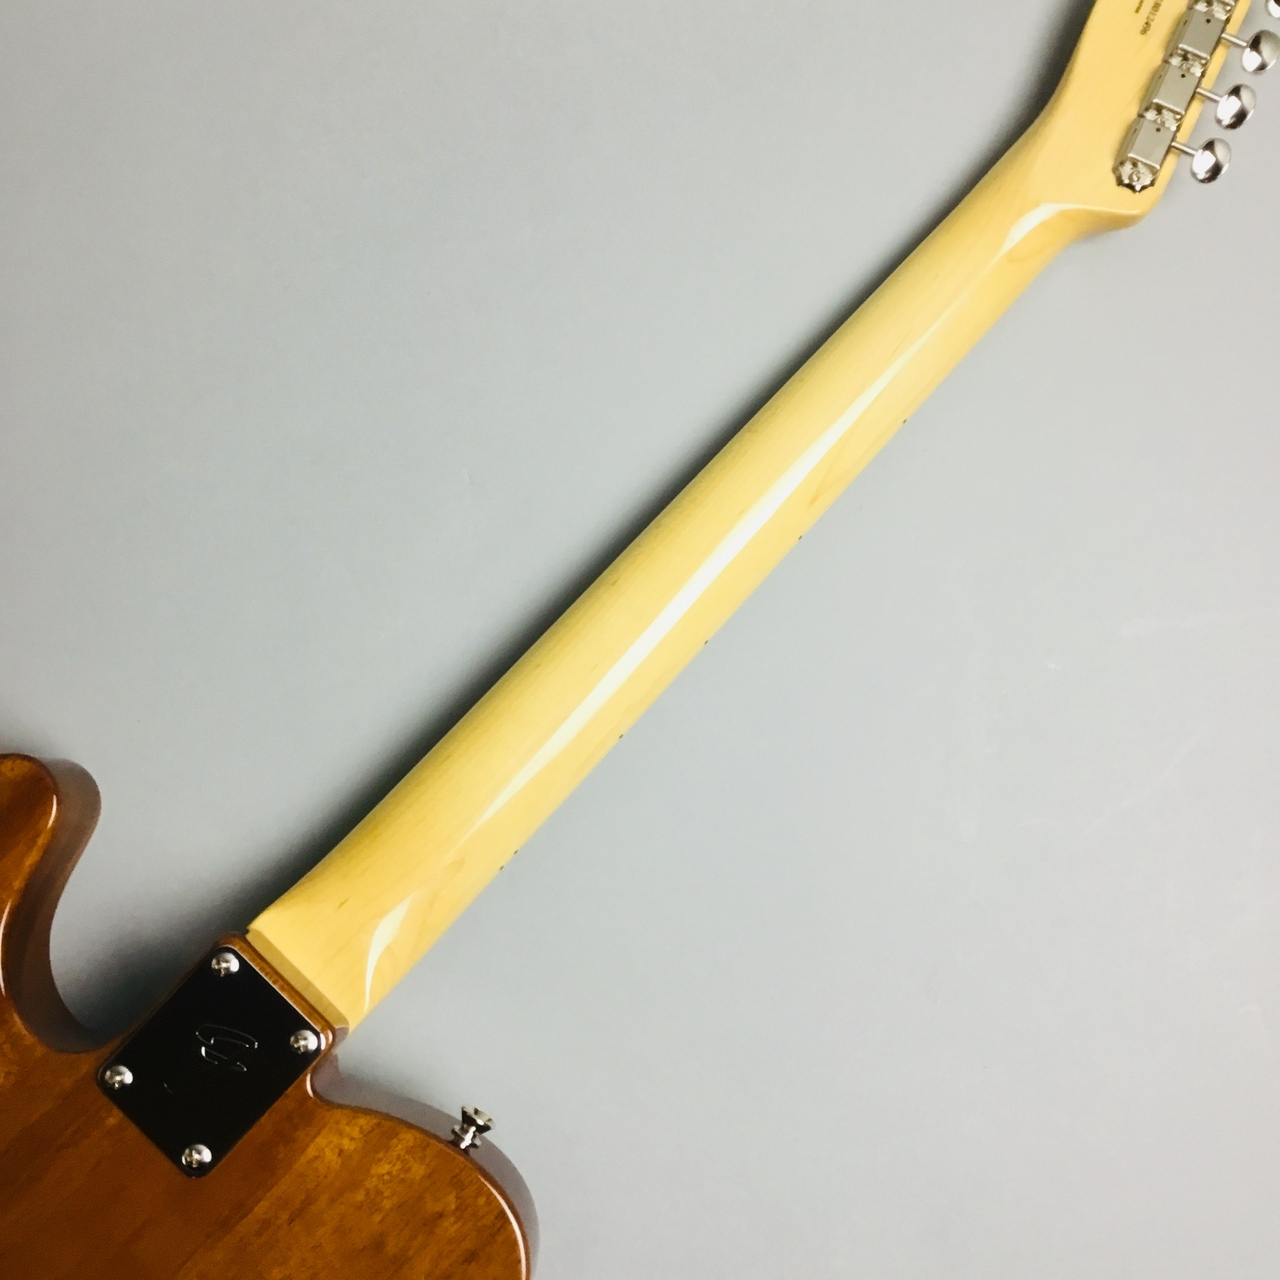 MADE IN JAPAN TRADITIONAL 69 TELECASTER THINLINEのケース・その他画像